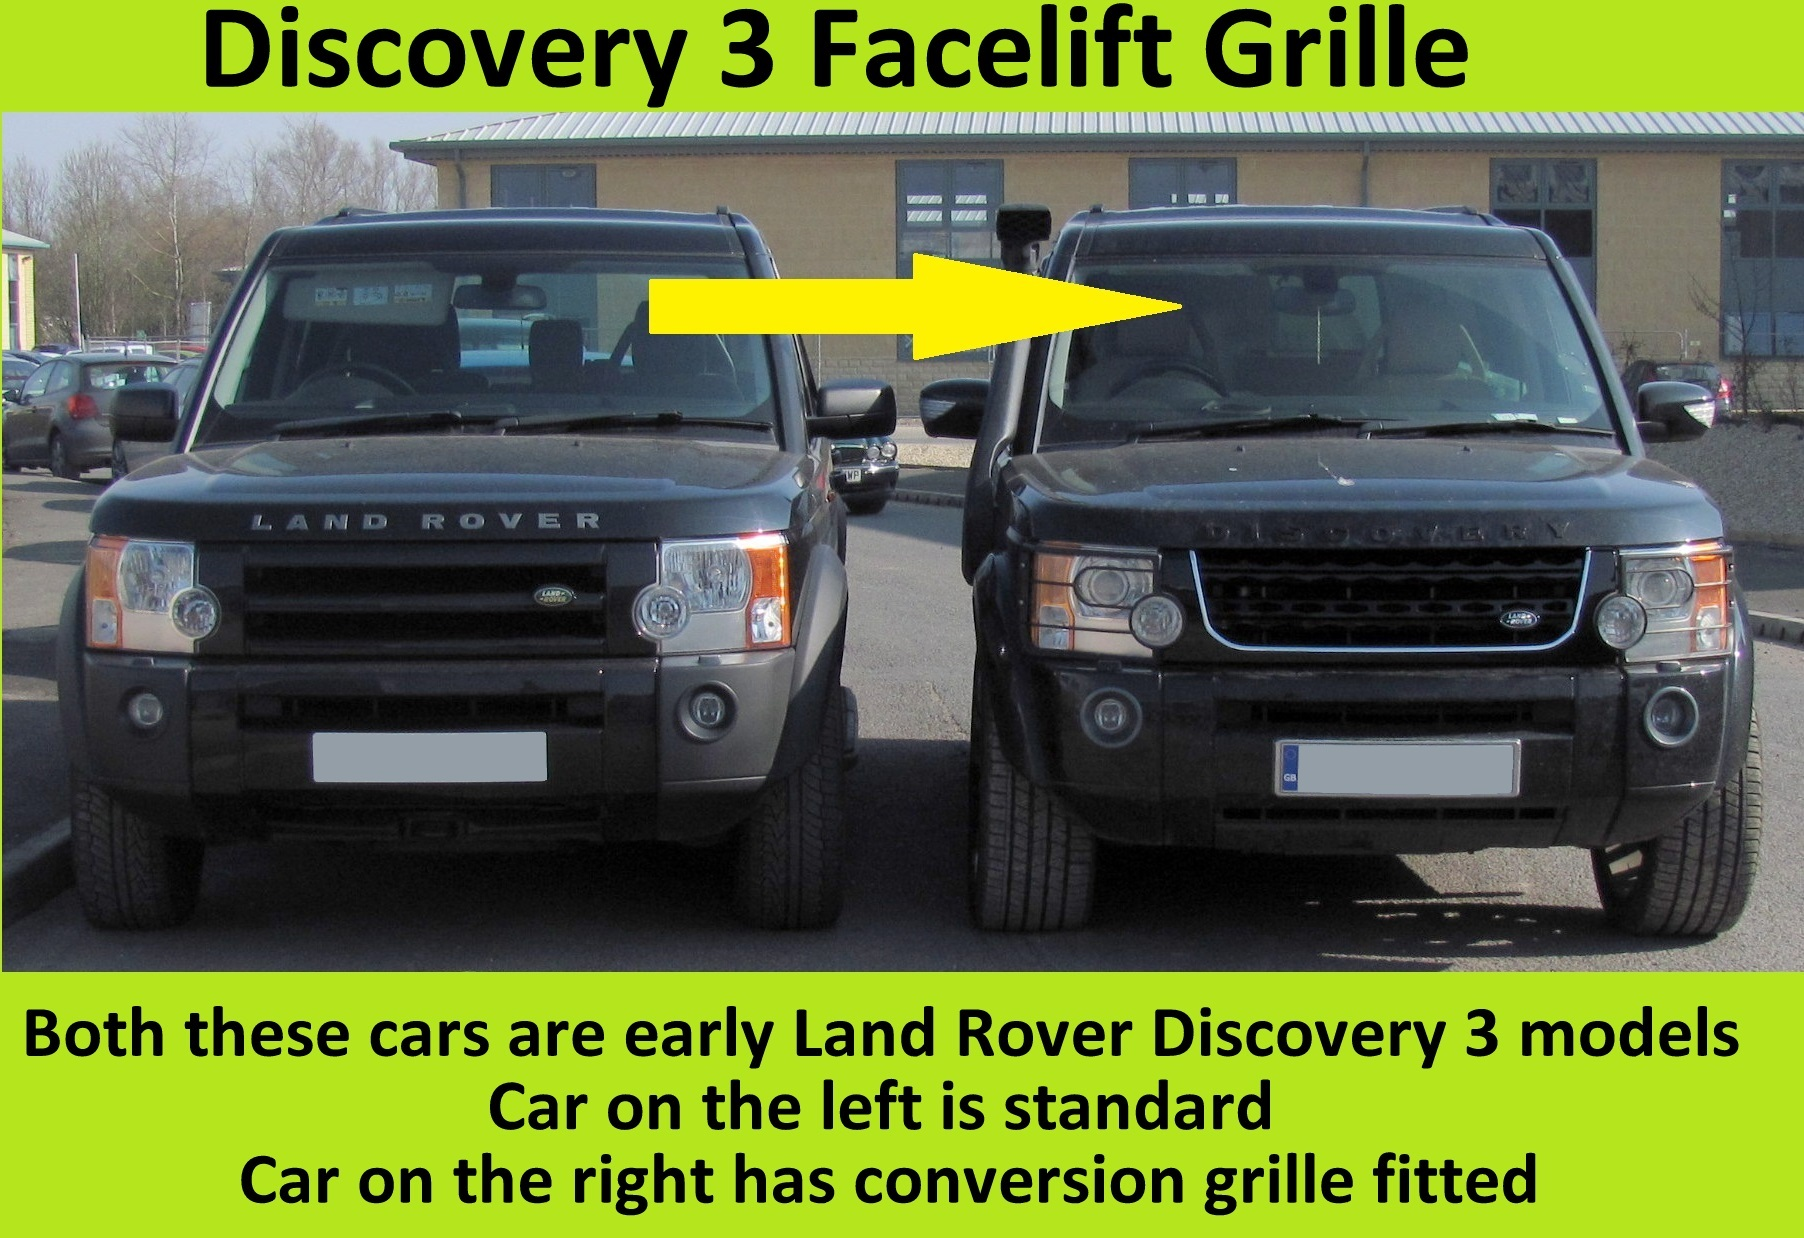 Black Chrome Chrome Disco 4 facelift style front grille Land Rover